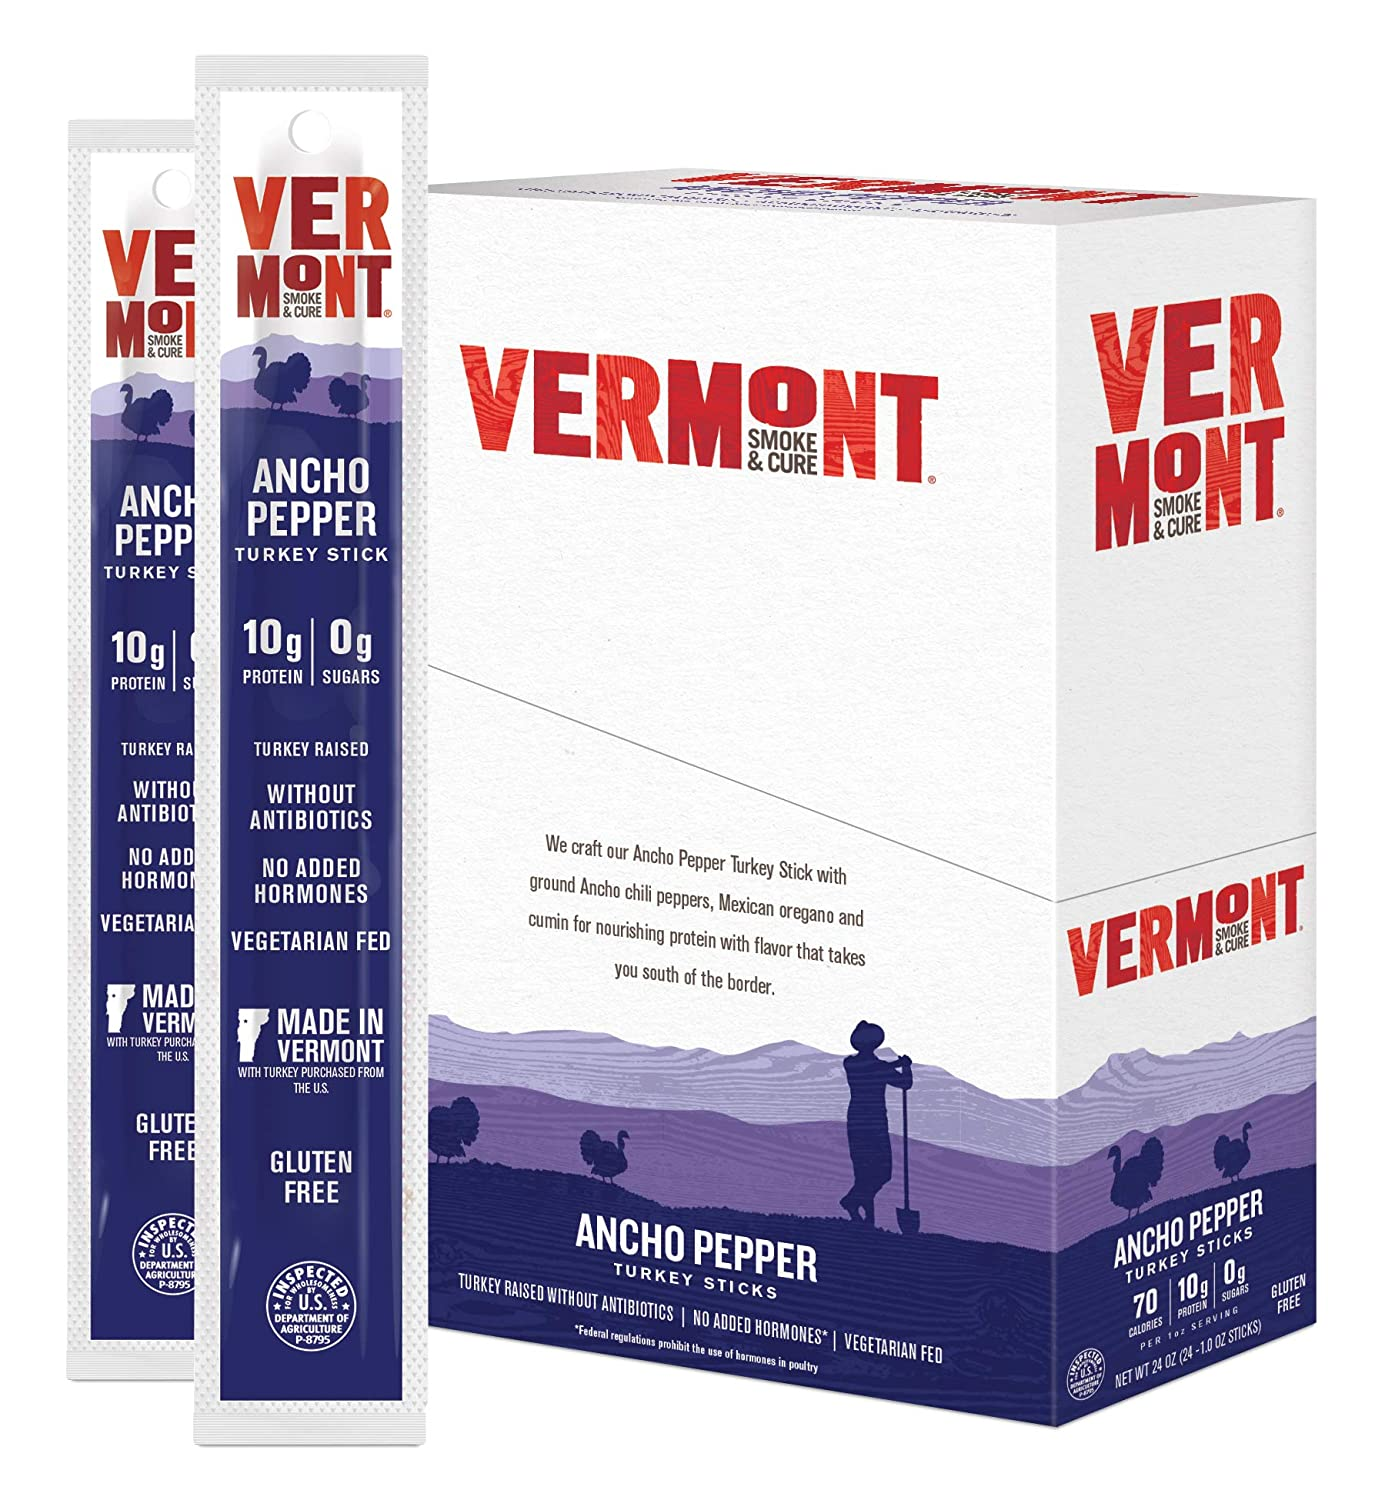 Vermont Smoke & Cure Meat Sticks, Turkey, Antibiotic Free, Gluten Free, Ancho Pepper, 1oz Stick, 24 Count